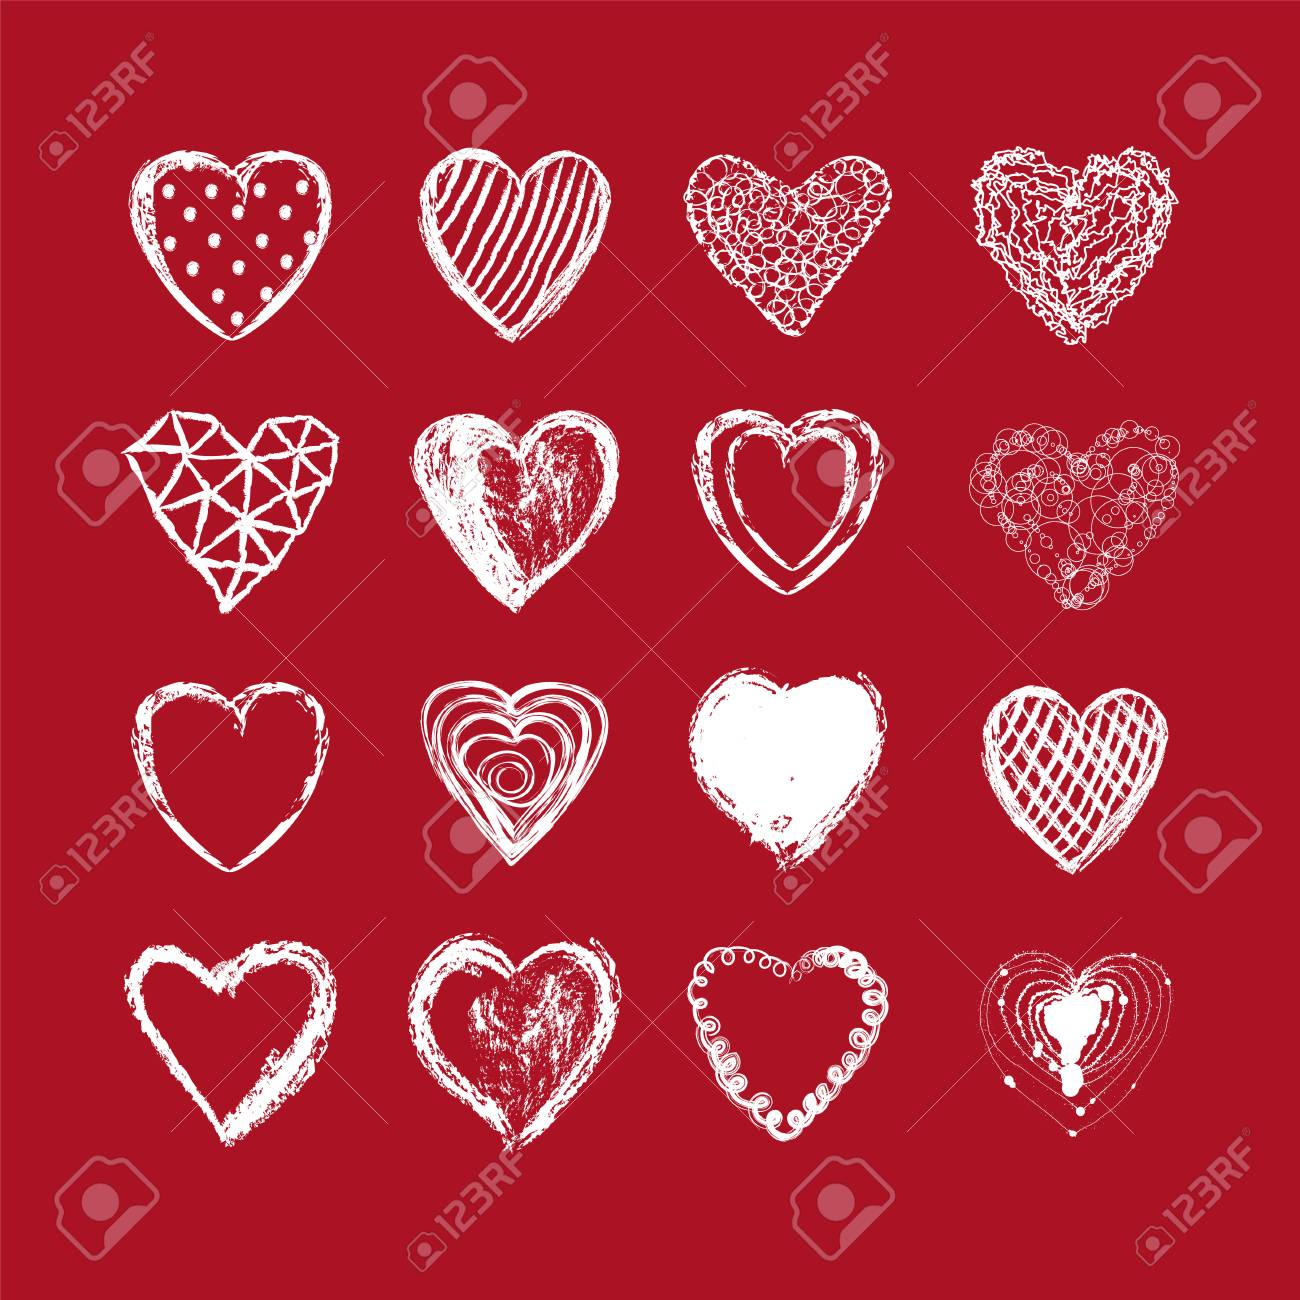 photo stock vector hand drawn heart background valentines day red white color vector illustration love wallpaper abstra